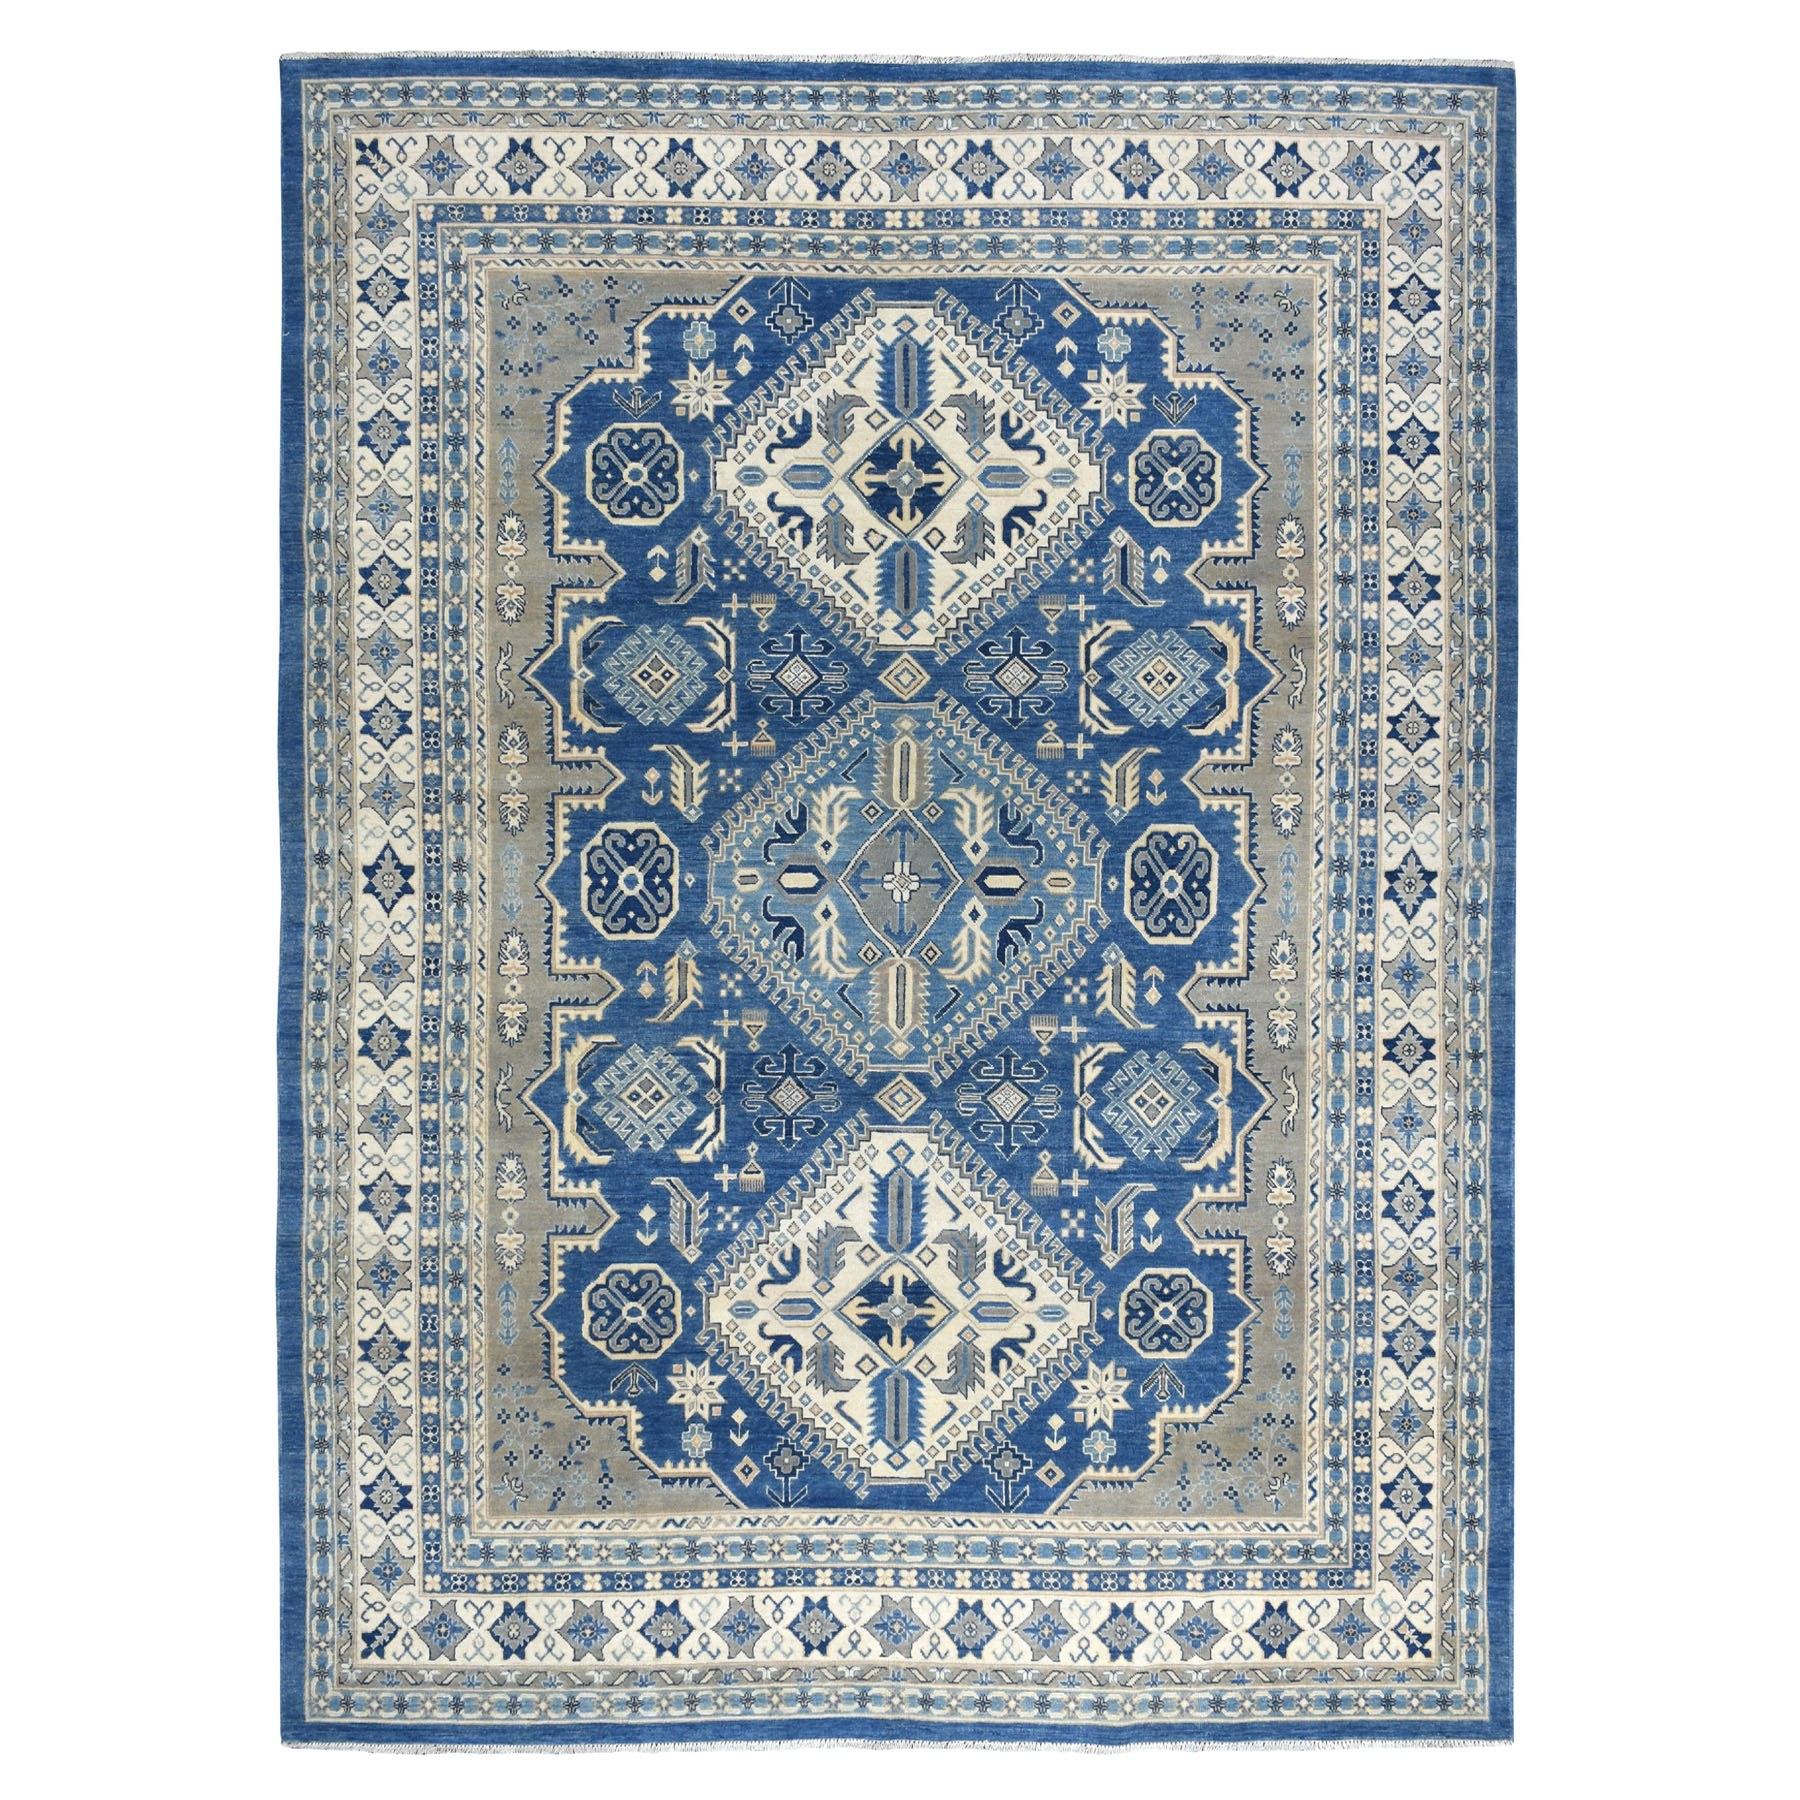 "8'10""x11'8"" Blue Vintage Look Kazak Pure Wool Tribal Design Hand Knotted Oriental Rug"